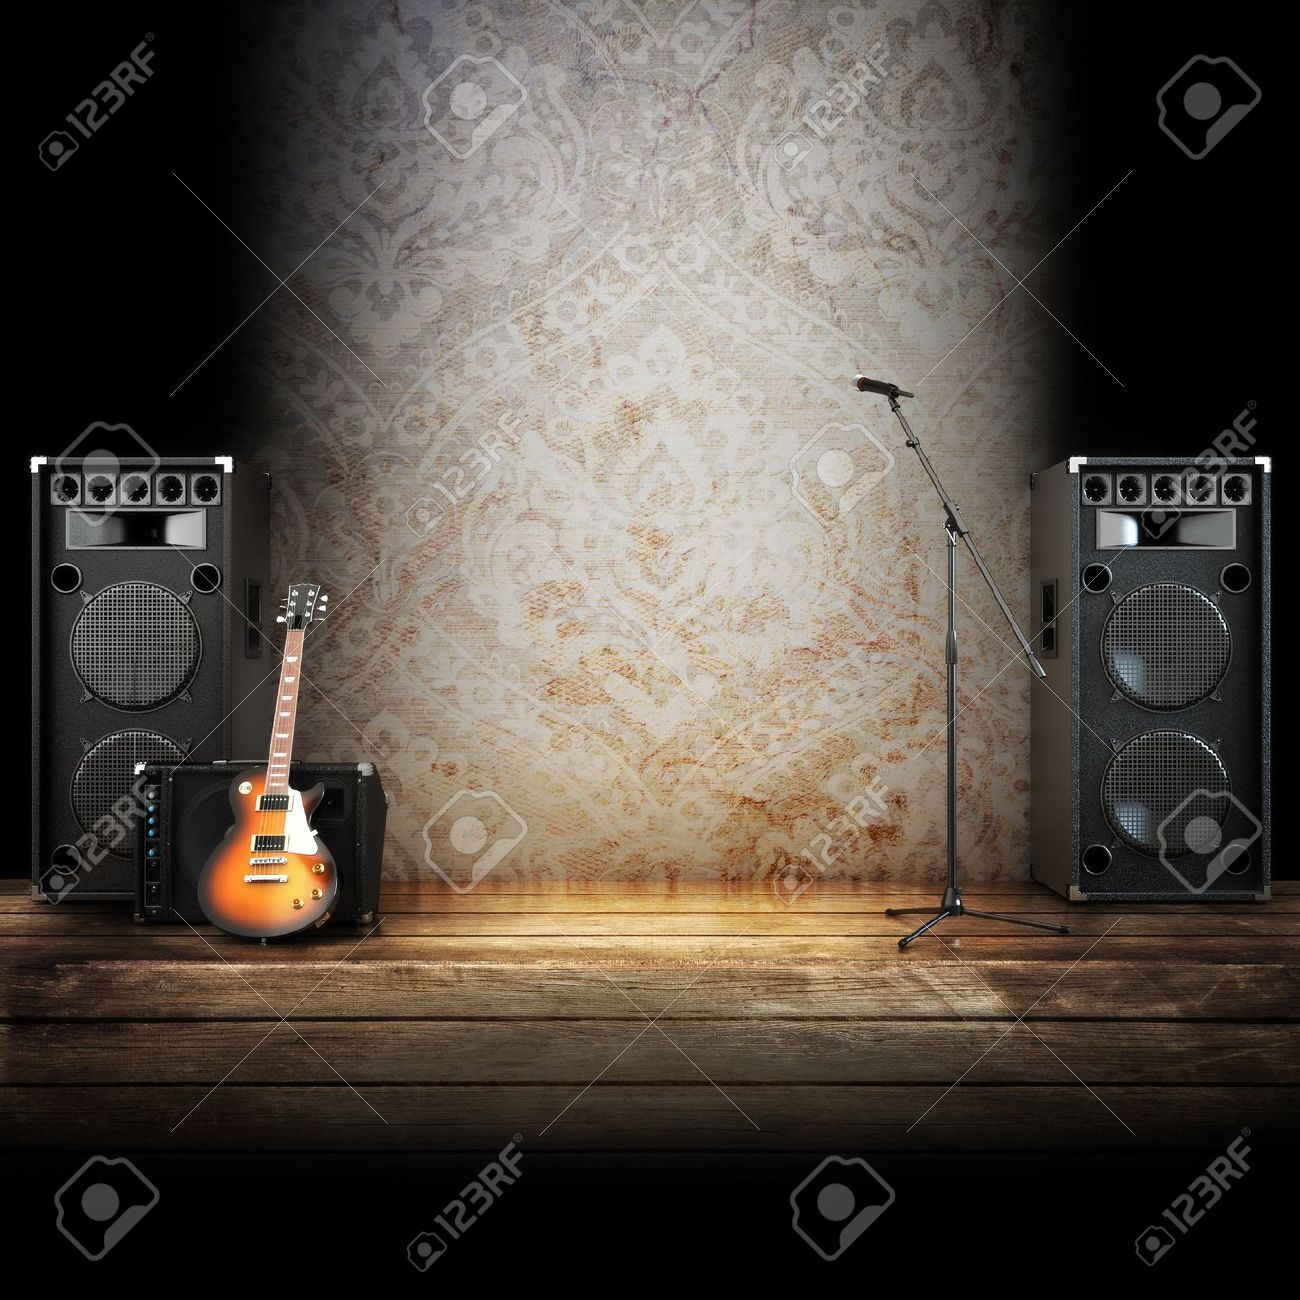 Stage lights background related keywords amp suggestions stage lights - Music Stage Or Singing Background Microphone Guitar And Speakers With Wood Flooring Stock Photo